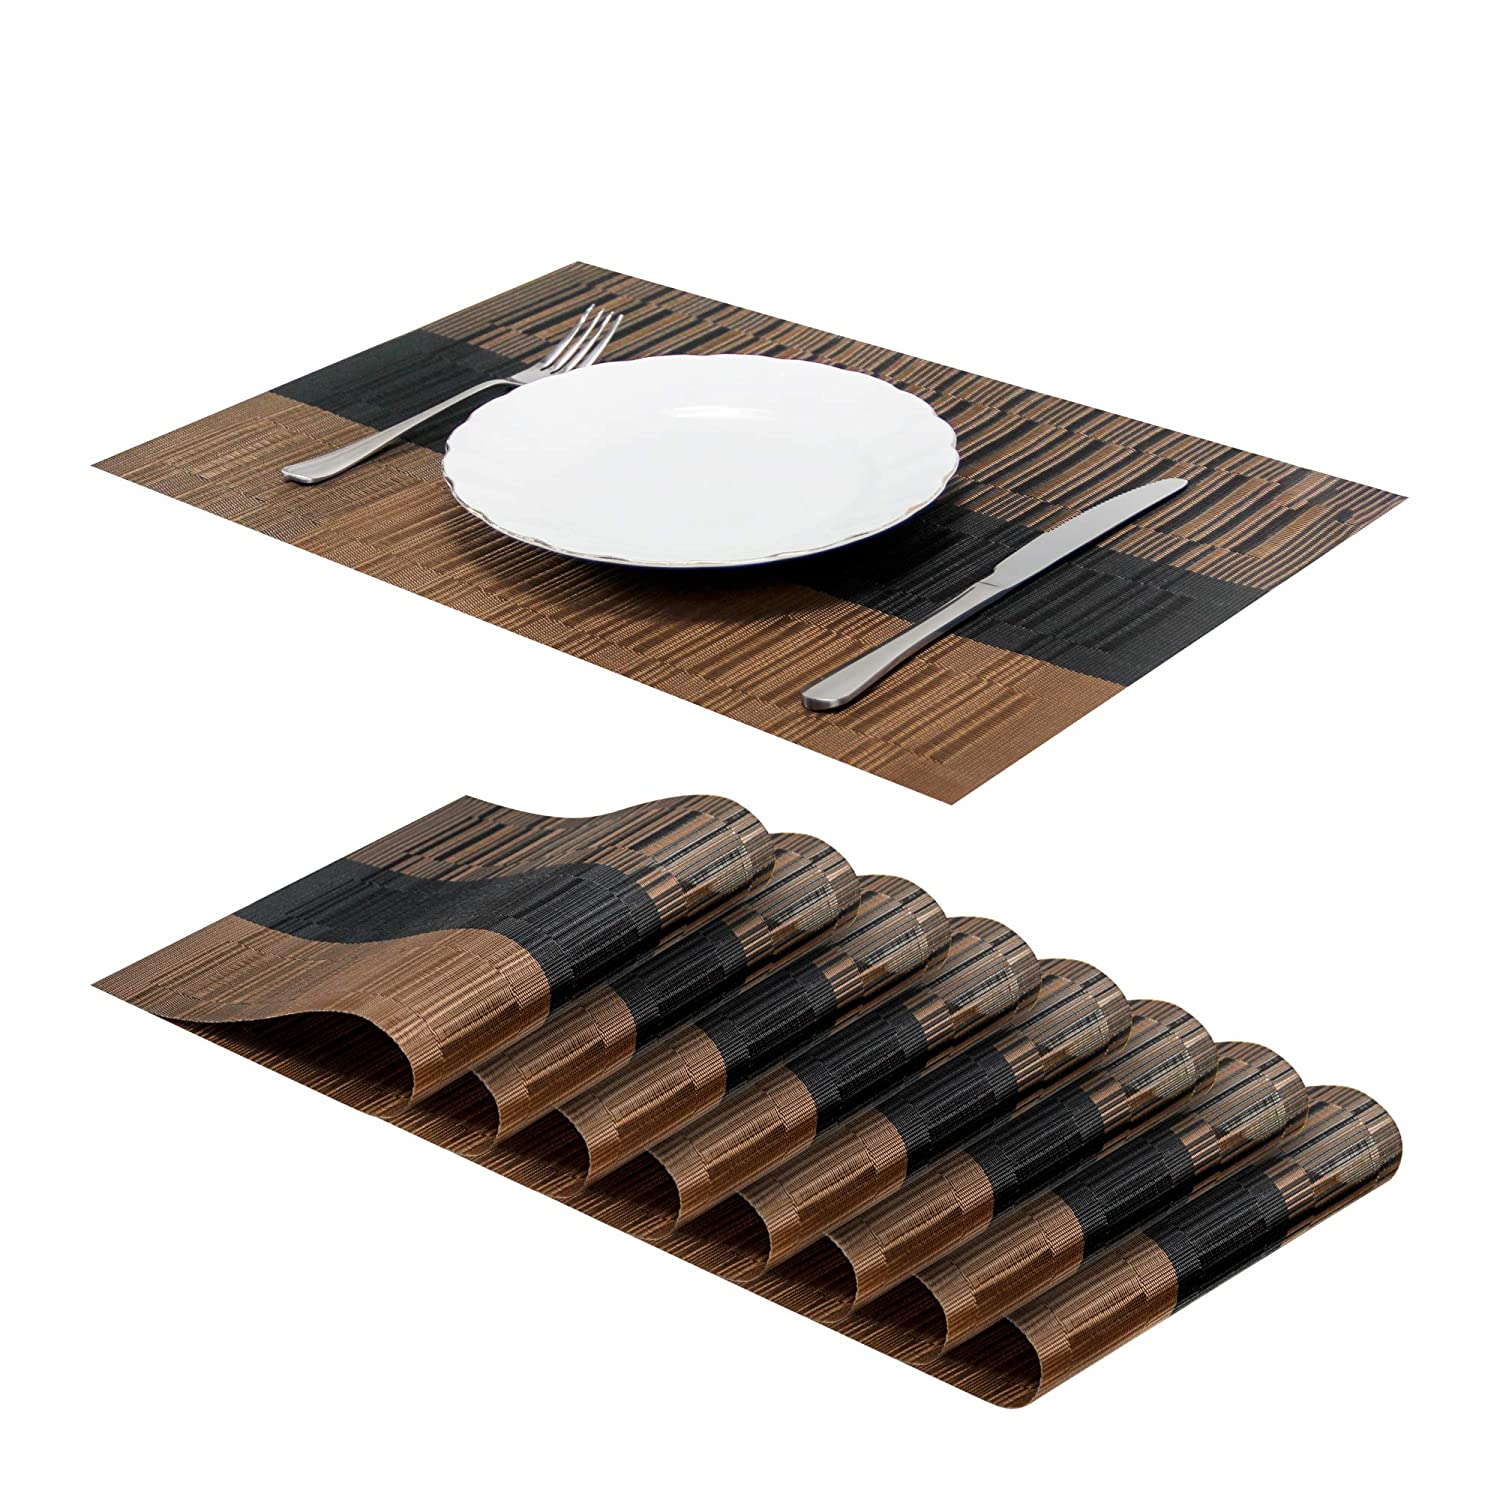 "Jujin 17.7"" Placemats Set of 8 Non-Slip Washable PVC Heat Resistant Table Mats for Dining Table Brown"